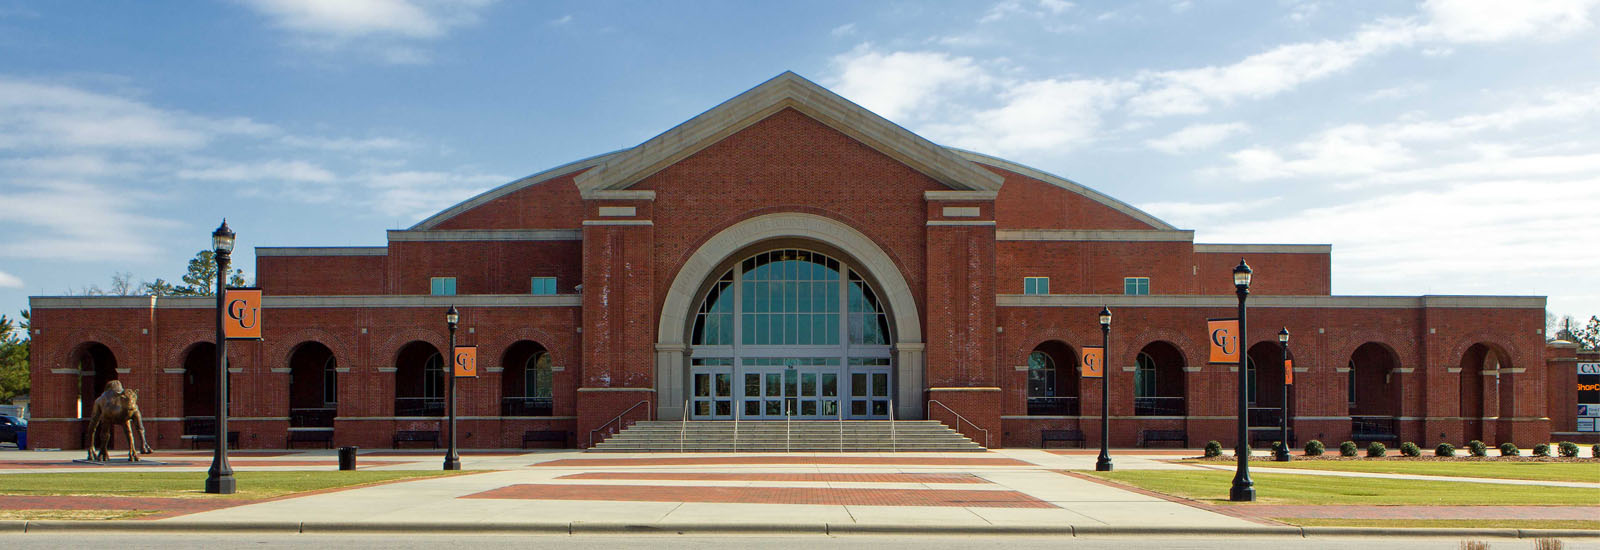 Entrance to the Campbell University Convocation Center